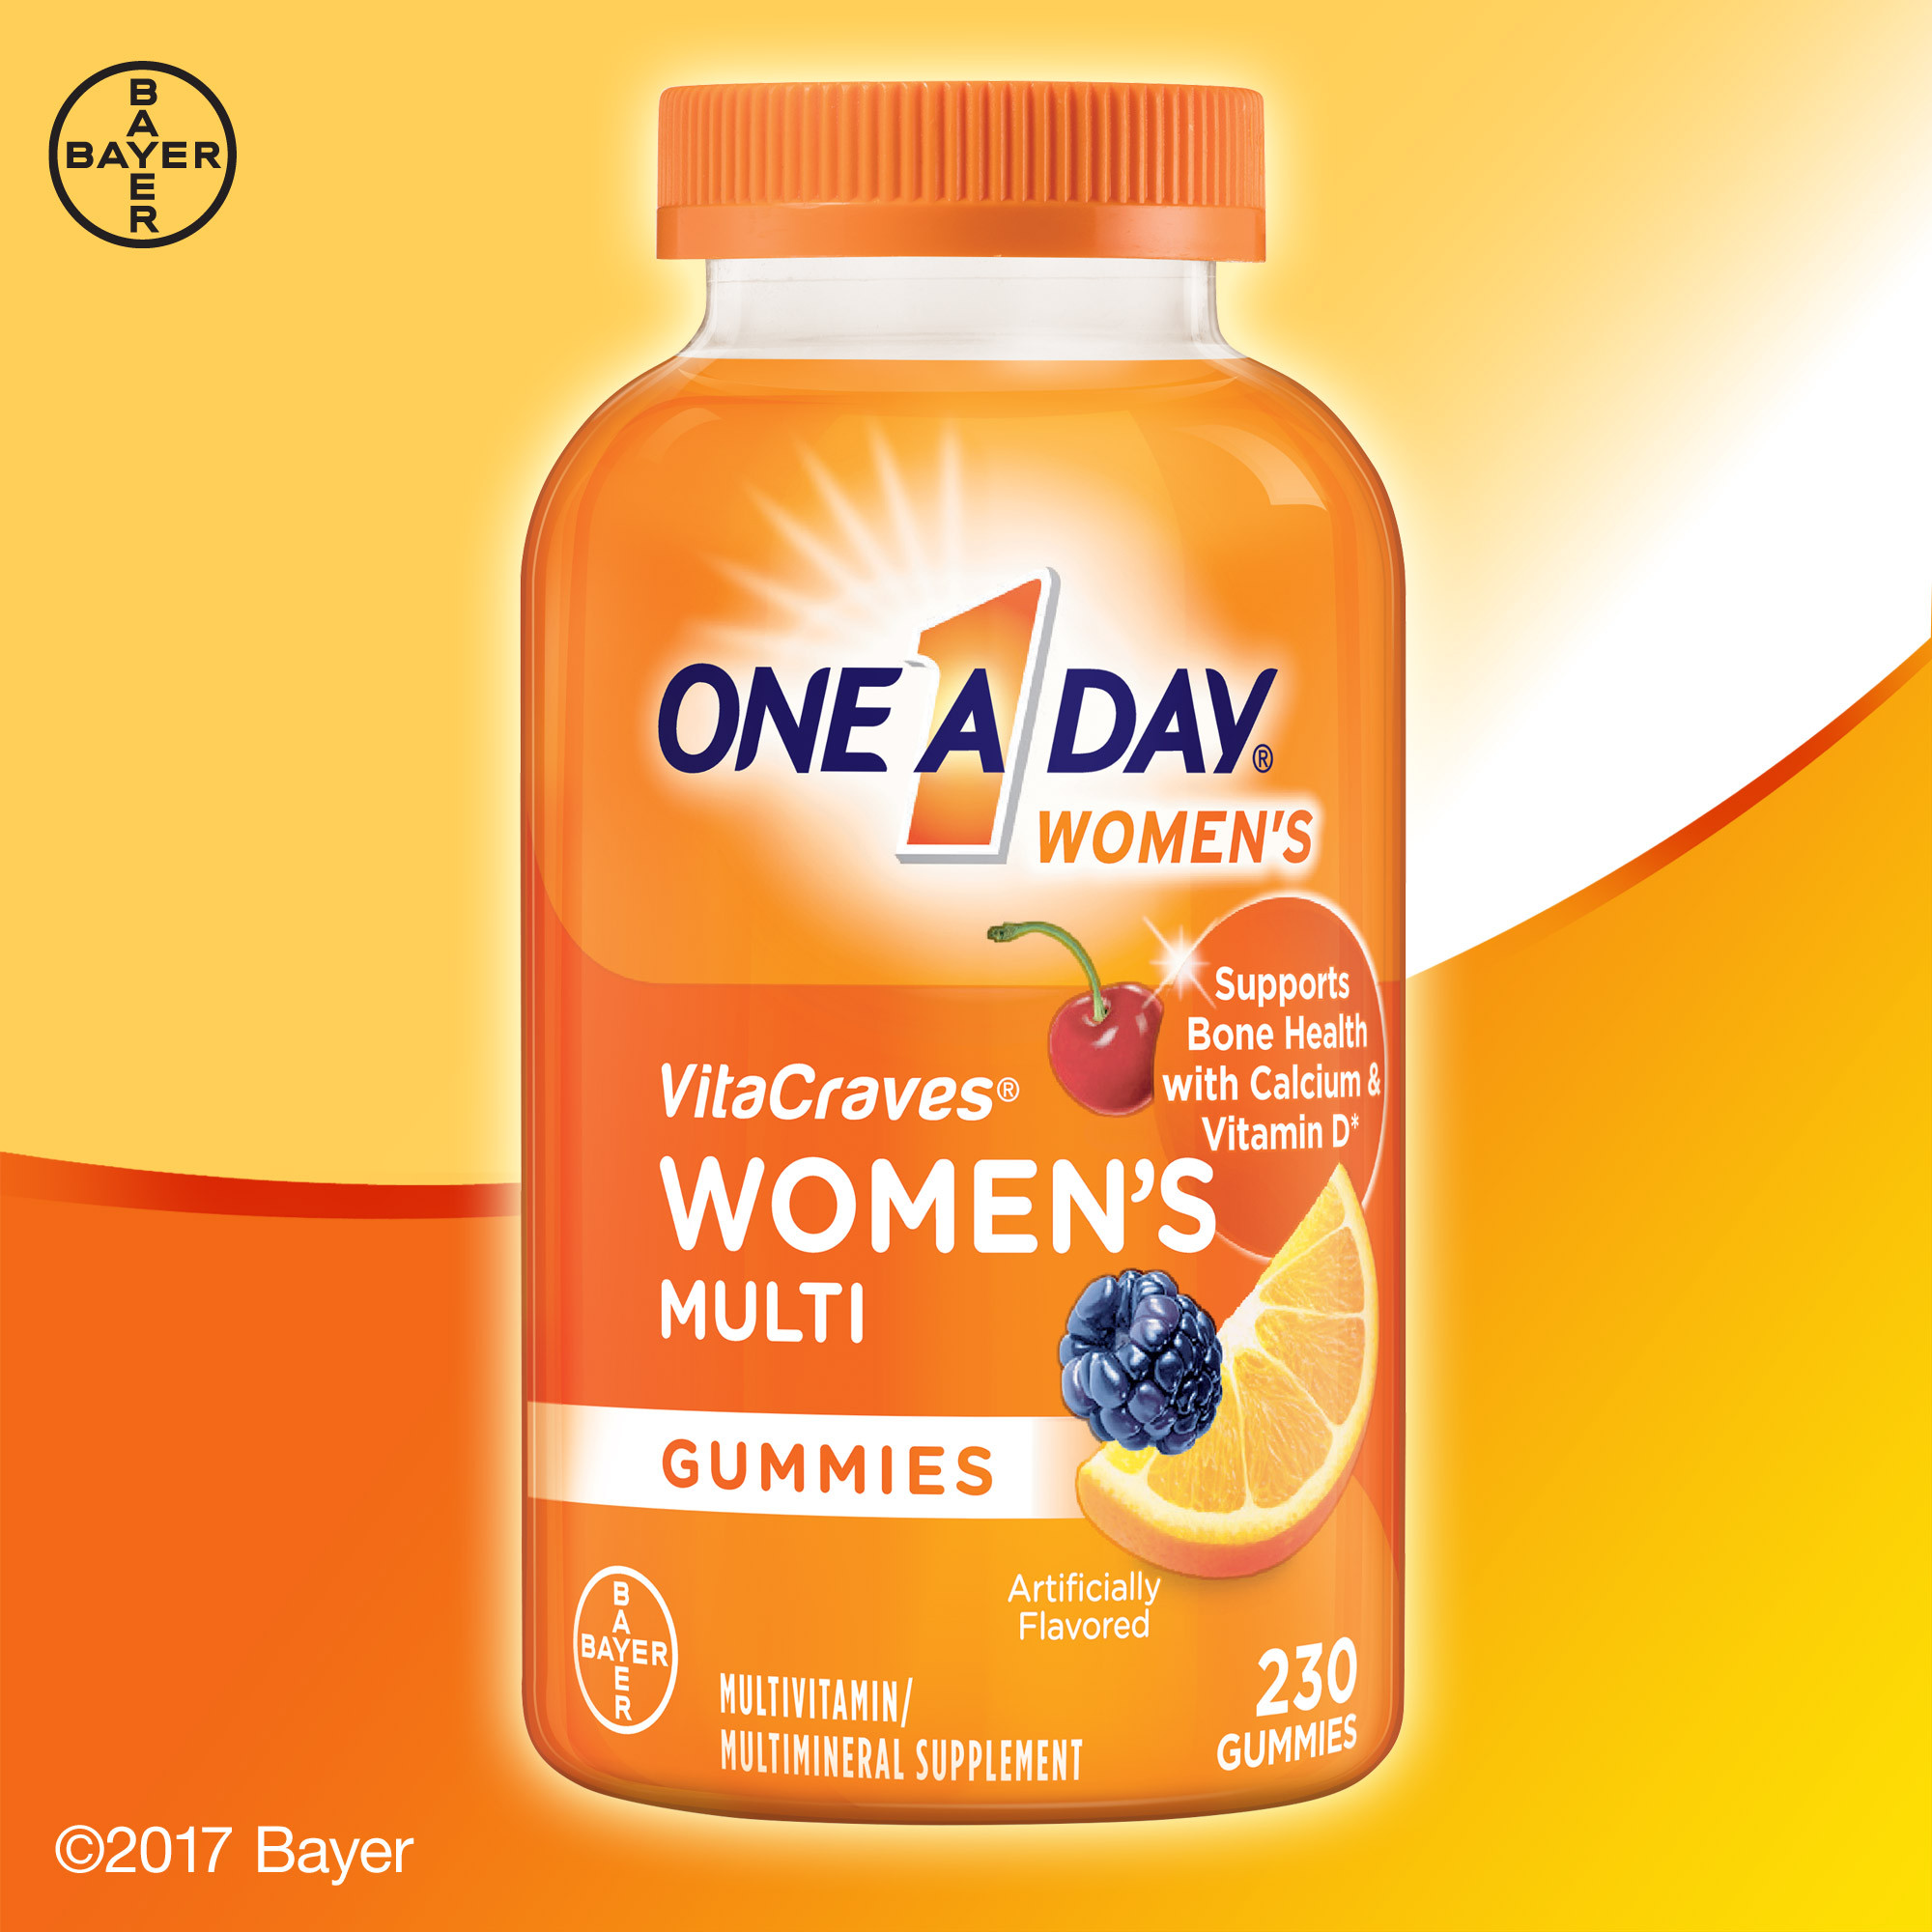 One A Day VitaCraves Women's Multi 230 Gummies